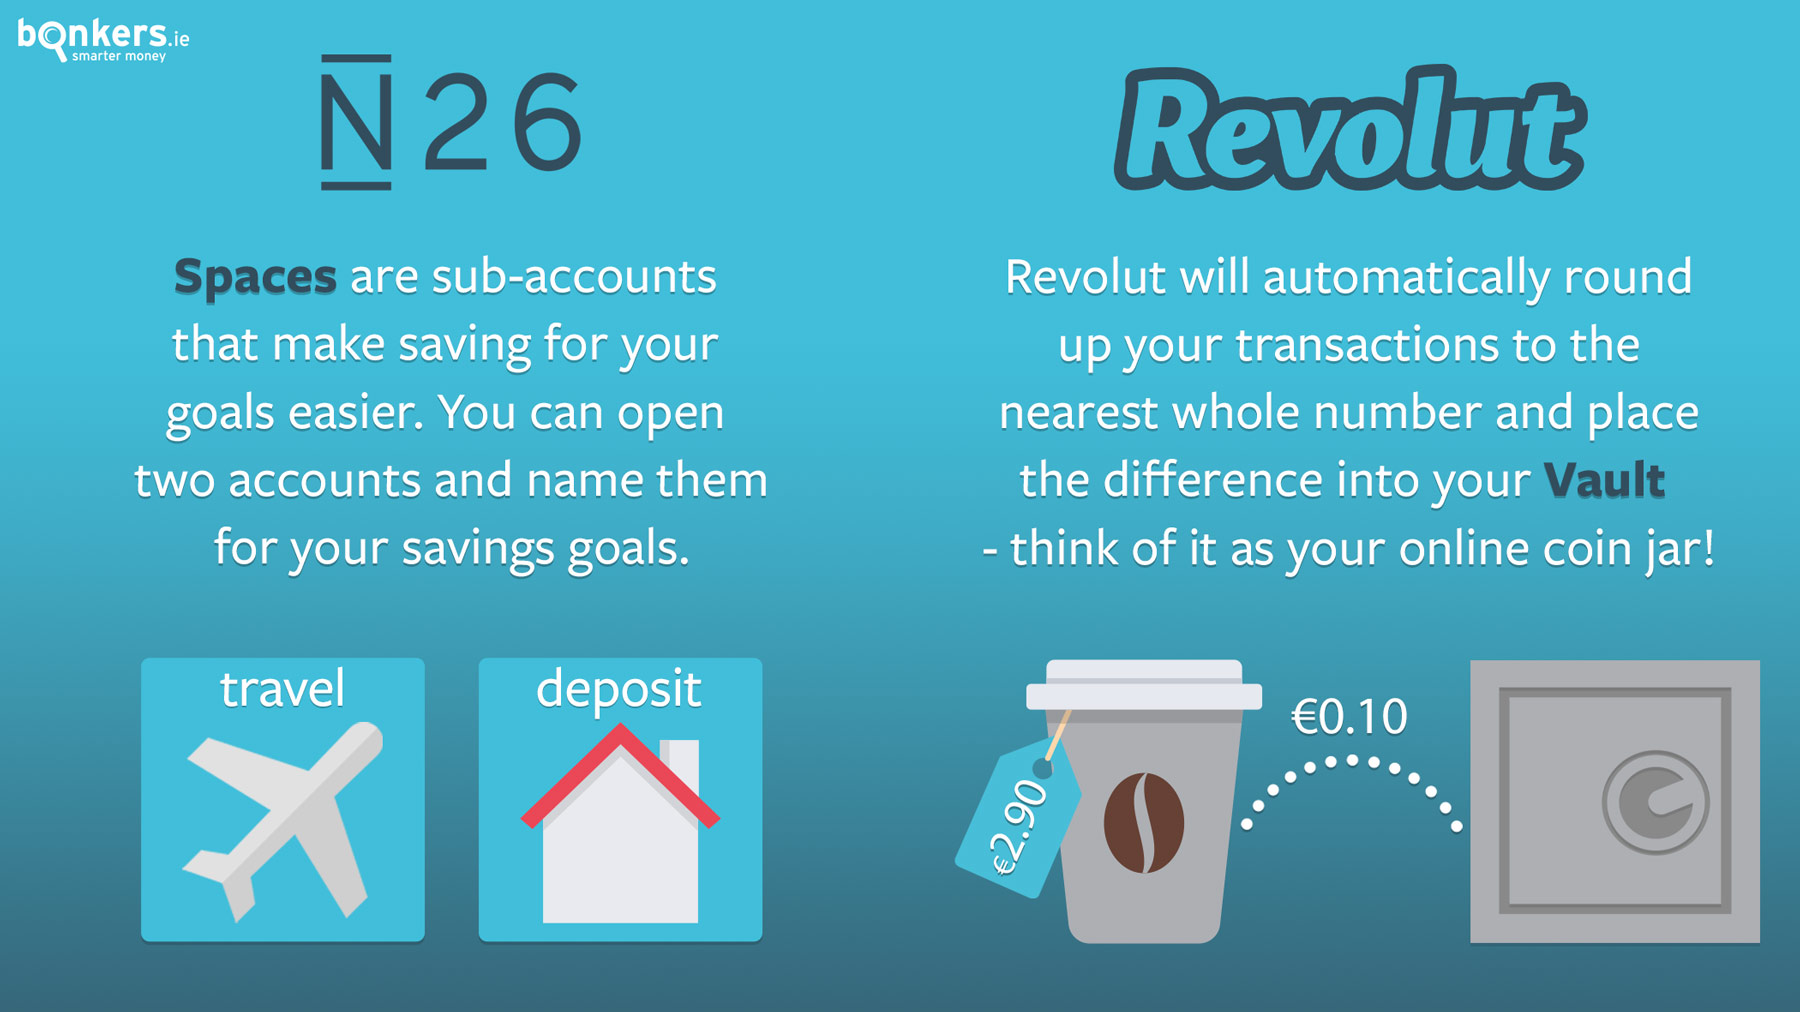 N26 versus Revolut - how do they compare? | bonkers ie